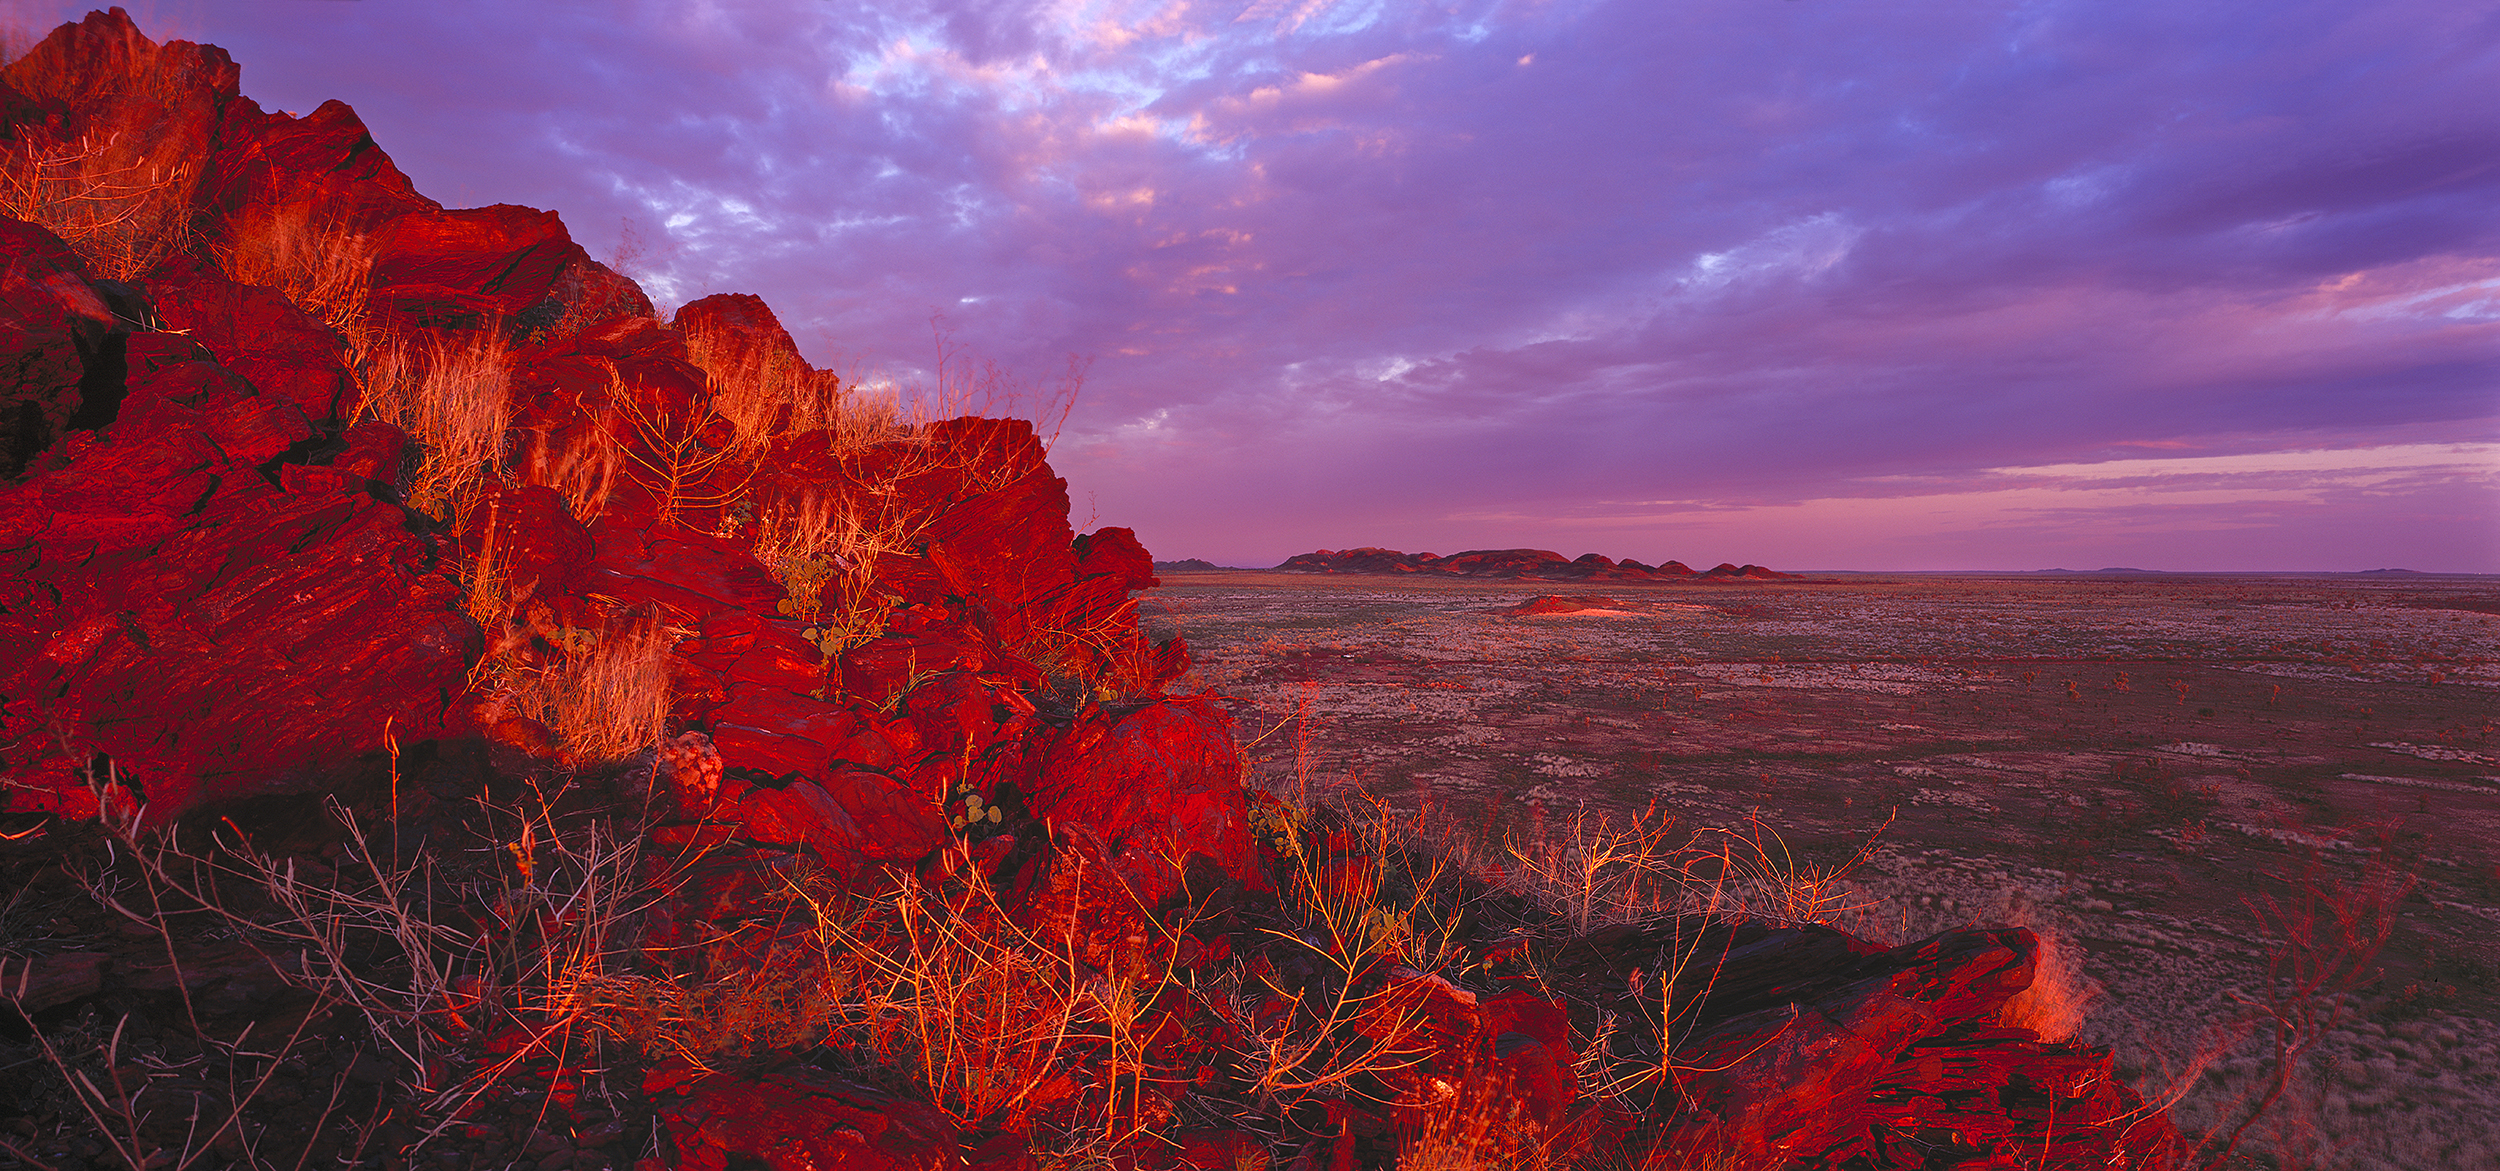 Sunrise near Yandeyarra, Pilbara, Western Australia, 2014.  Edition of 3.